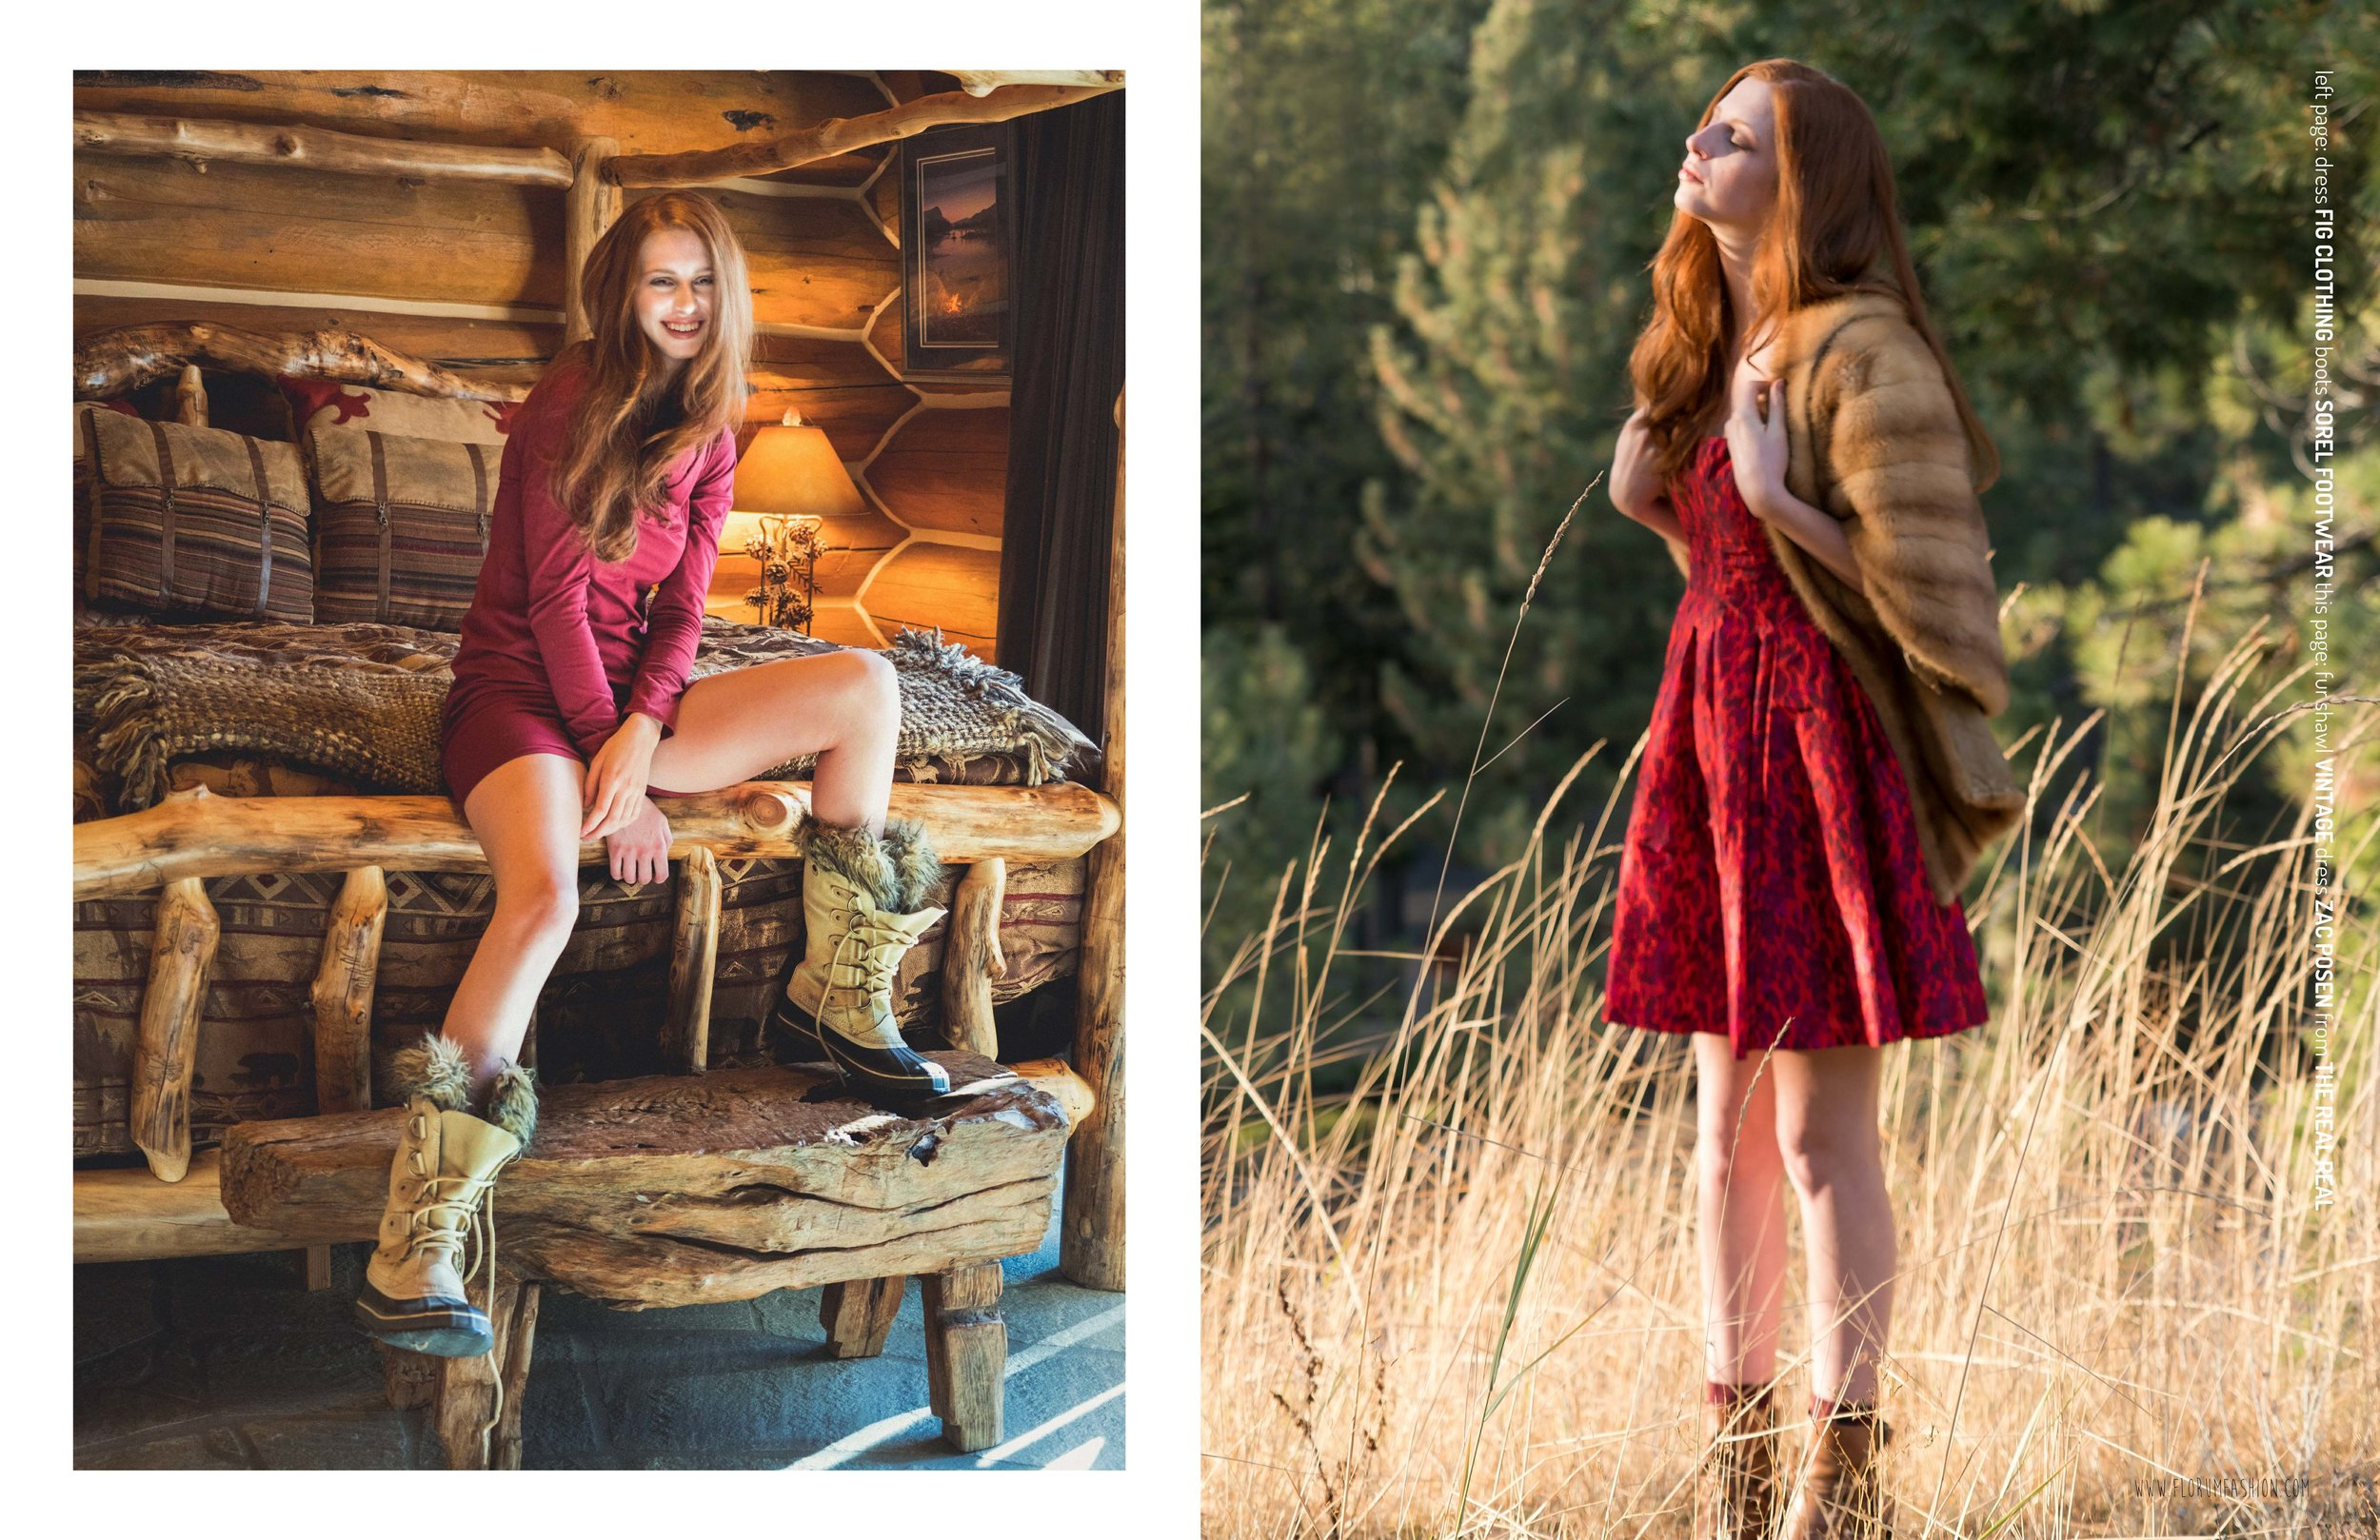 florum fashion magazine Cabin Fever by Joy Strotz - makeup by Rosa Mercedes Tunnel CReek Lodge - eco wardrobe stylist Noelle Lynne - cast images - synergy organics - fig clothing - ankedot organics - natural sustainable cozy comfortable snow look vintage fur